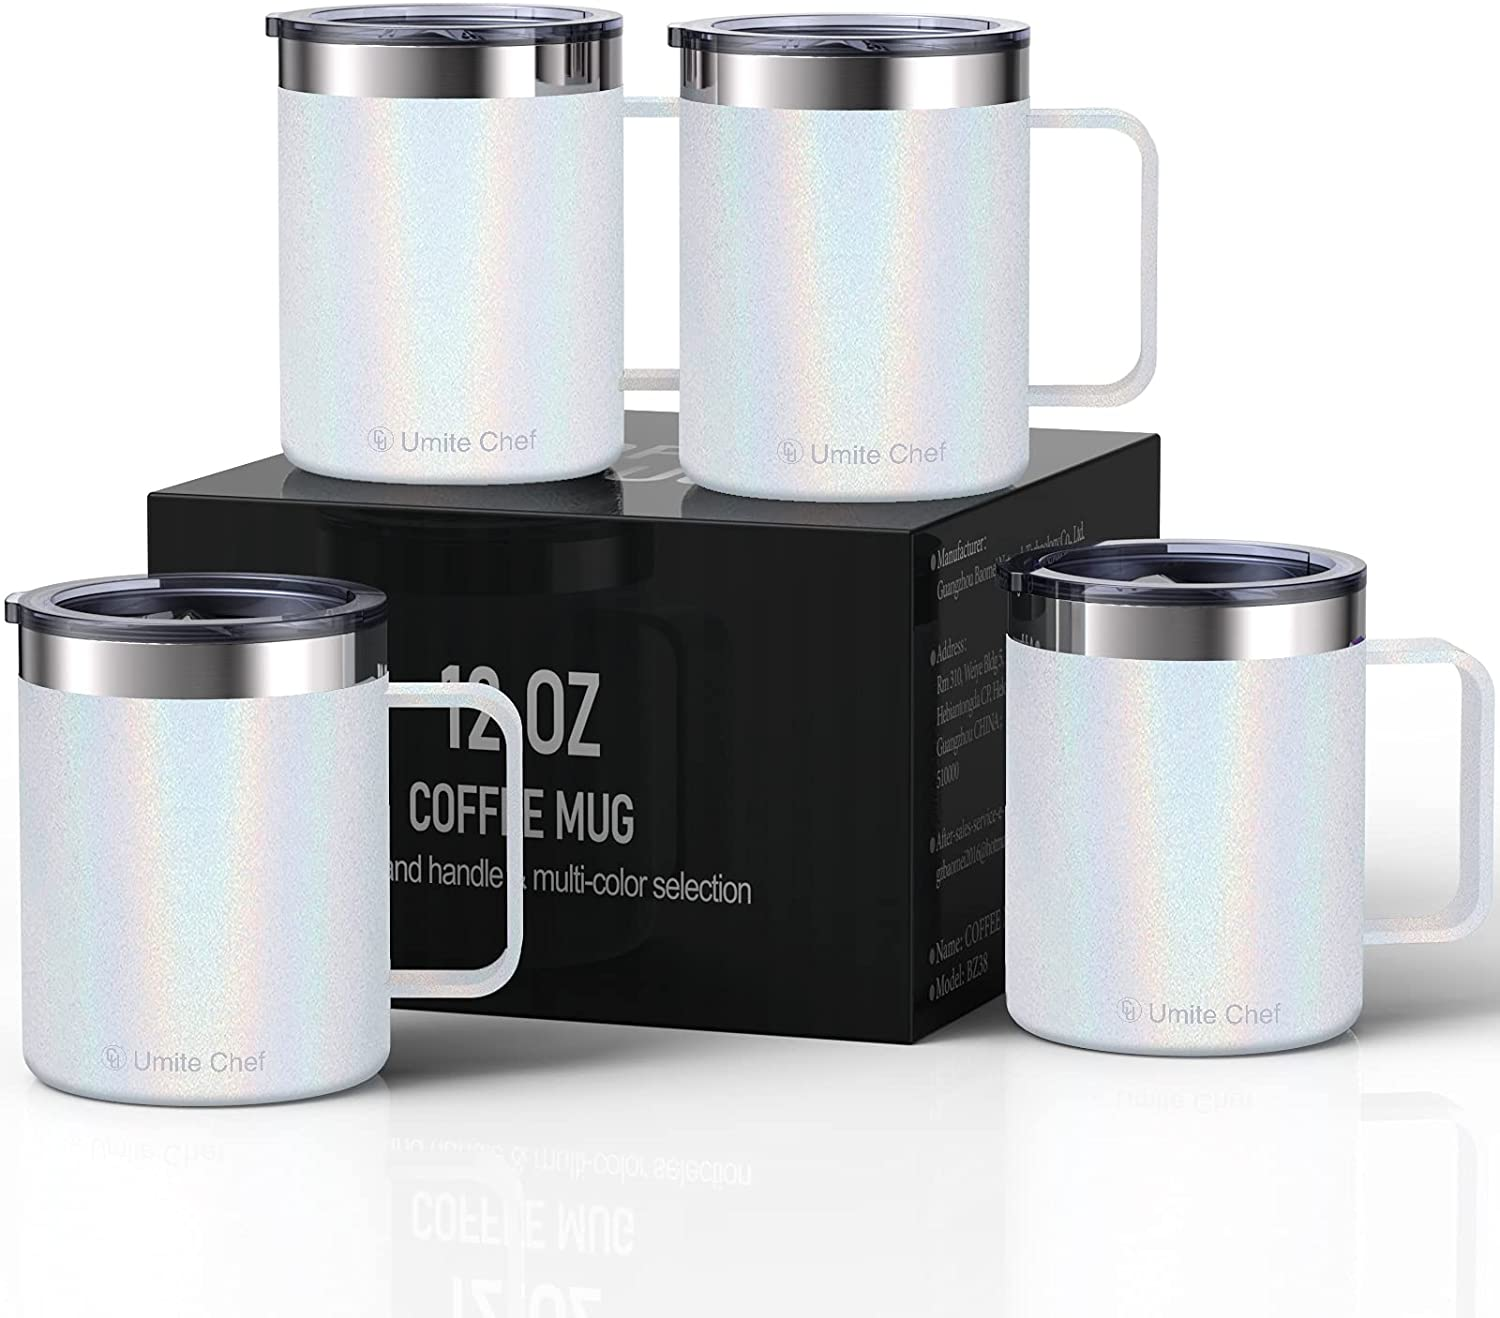 Umite Fixed price for sale Chef Stainless Steel Insulated Mug Coffee Tumbler Han with Selling rankings